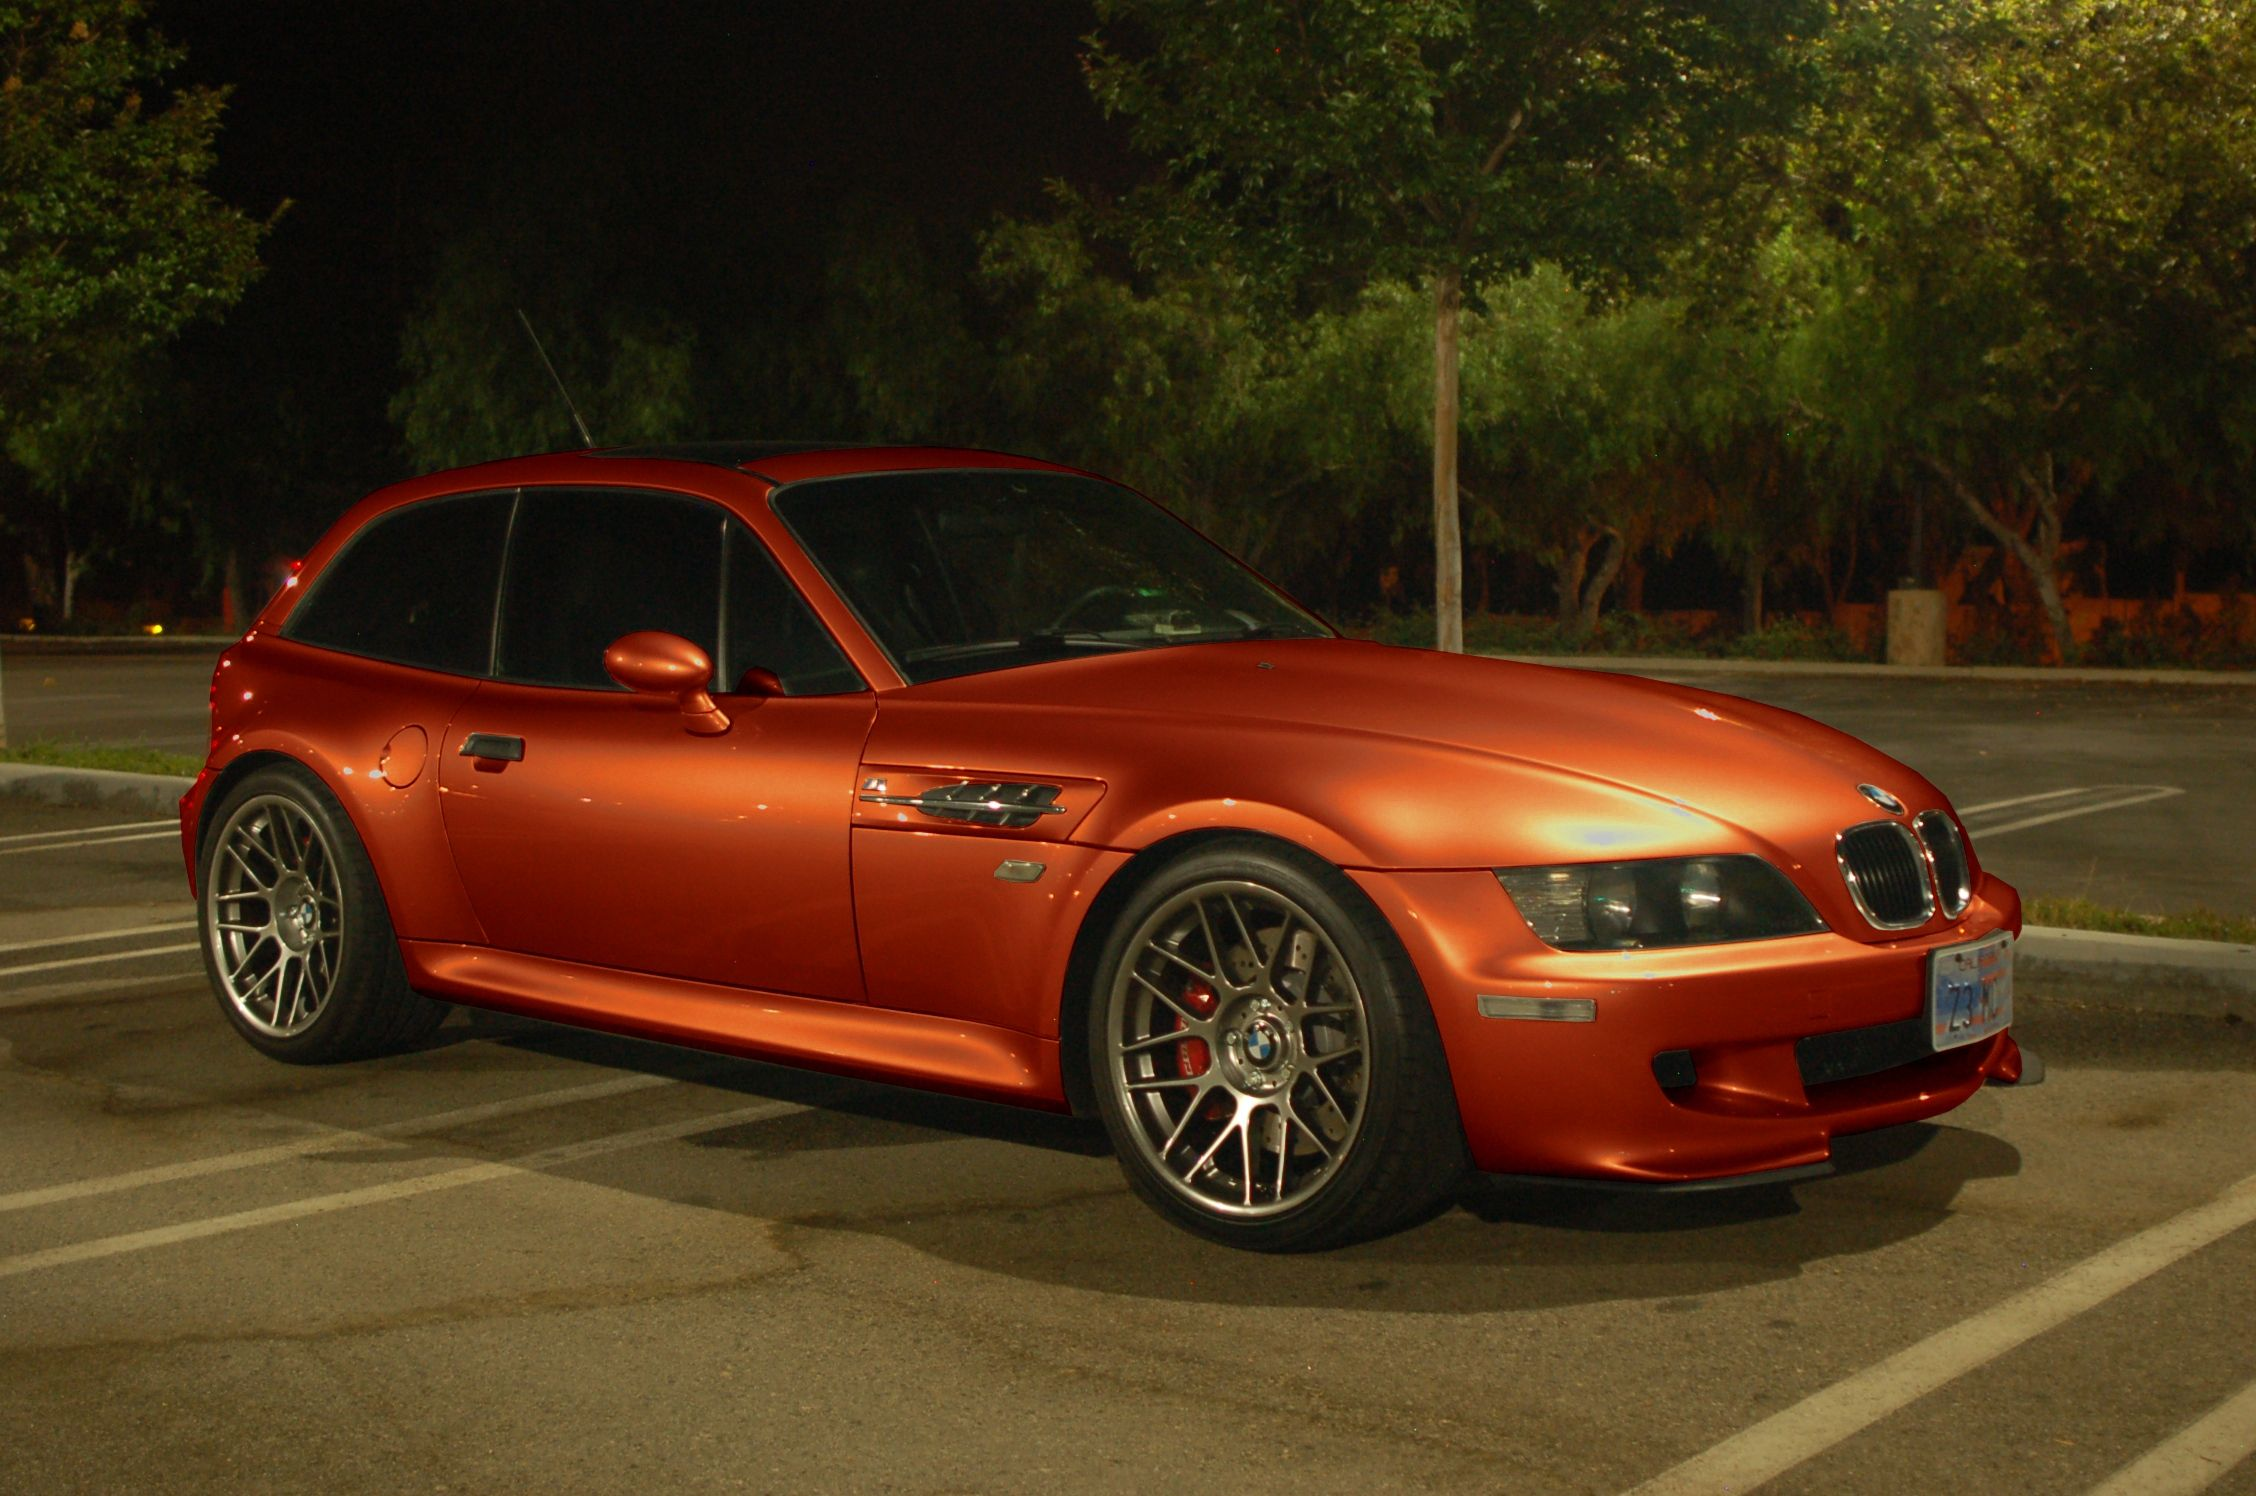 large june coupe and m sale tuning group for bmw en roadster club social item likes photos